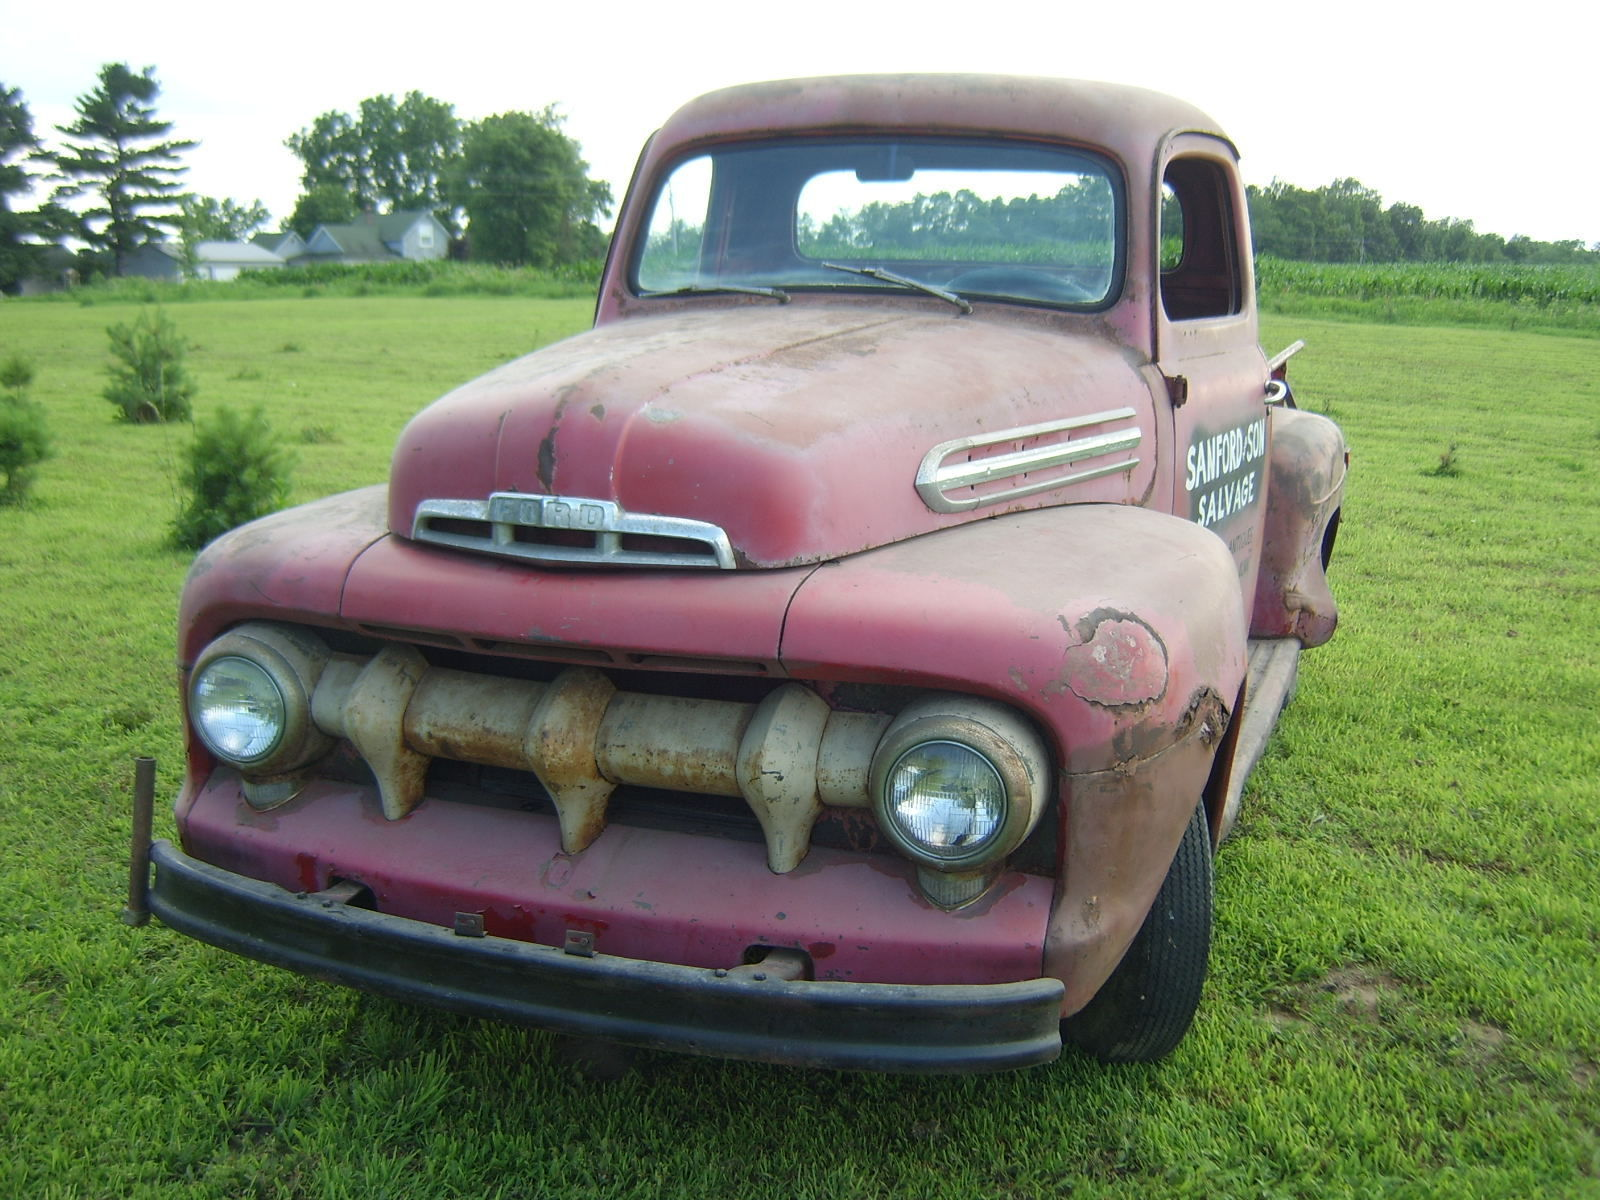 Magnificent Vintage Trucks For Sale Ebay Photos - Classic Cars Ideas ...